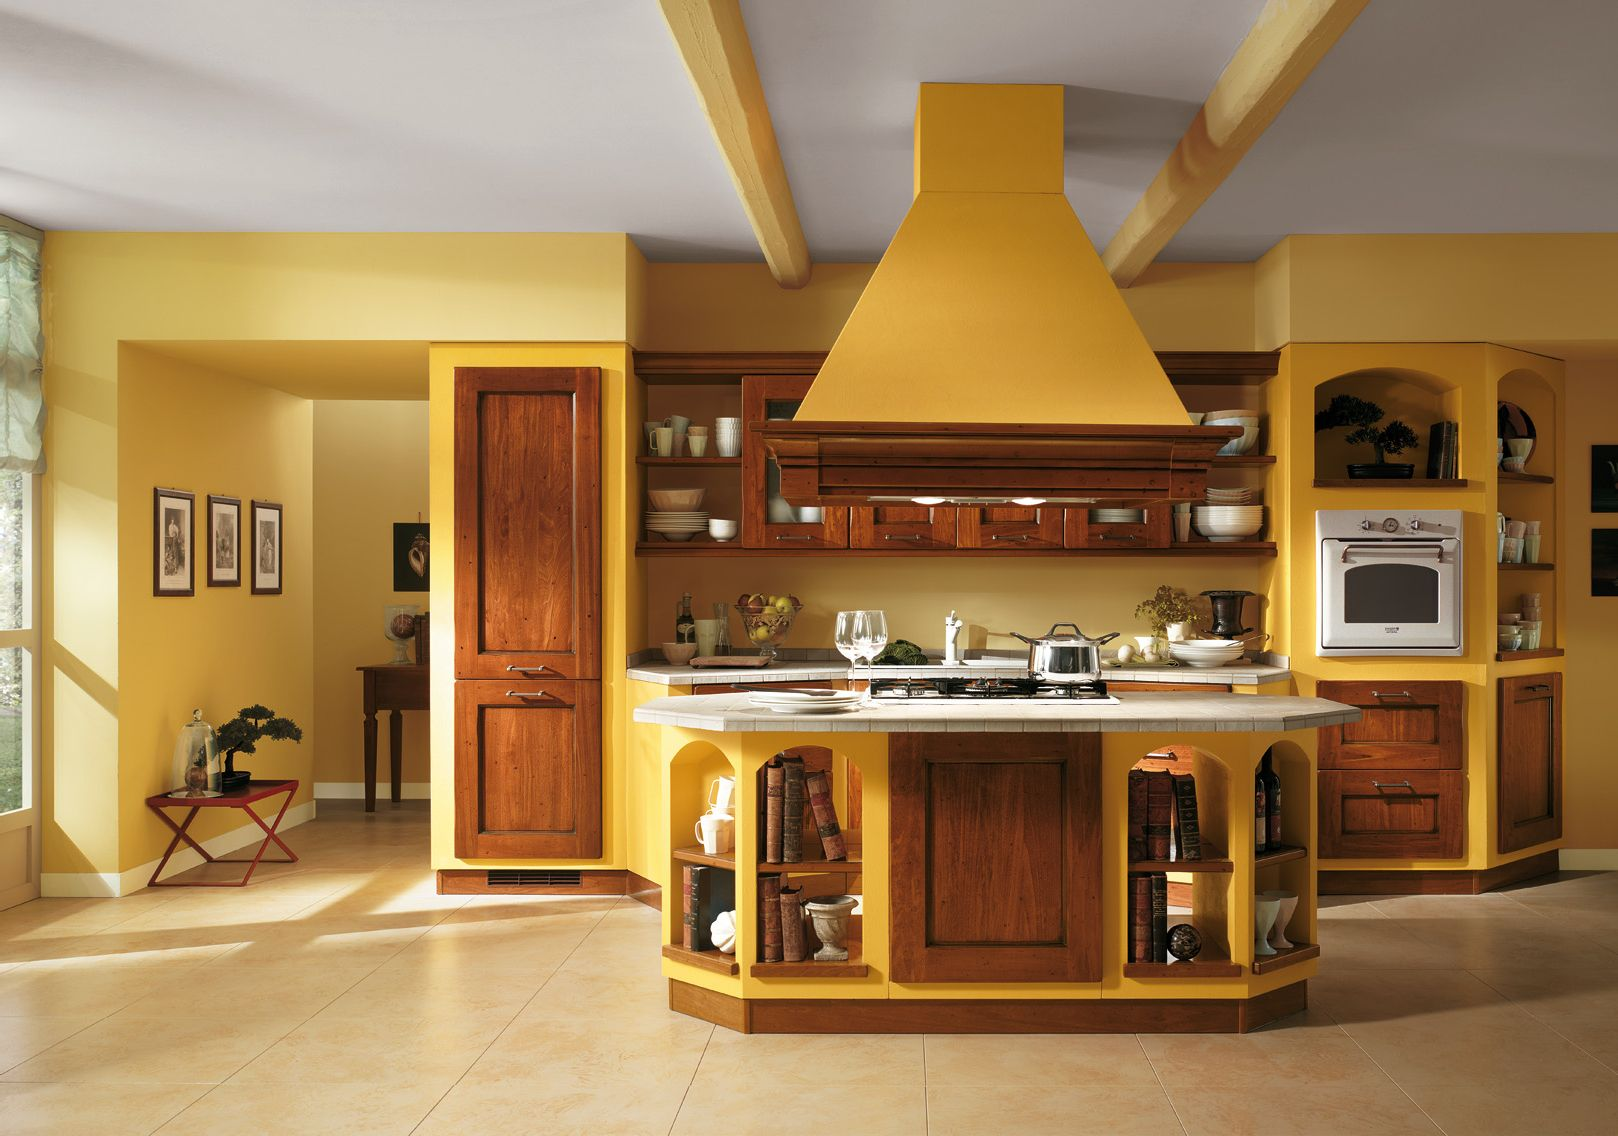 Italian kitchen color schemes for open interior design big chill pro line embraces fall colors Interior design kitchen paint colors